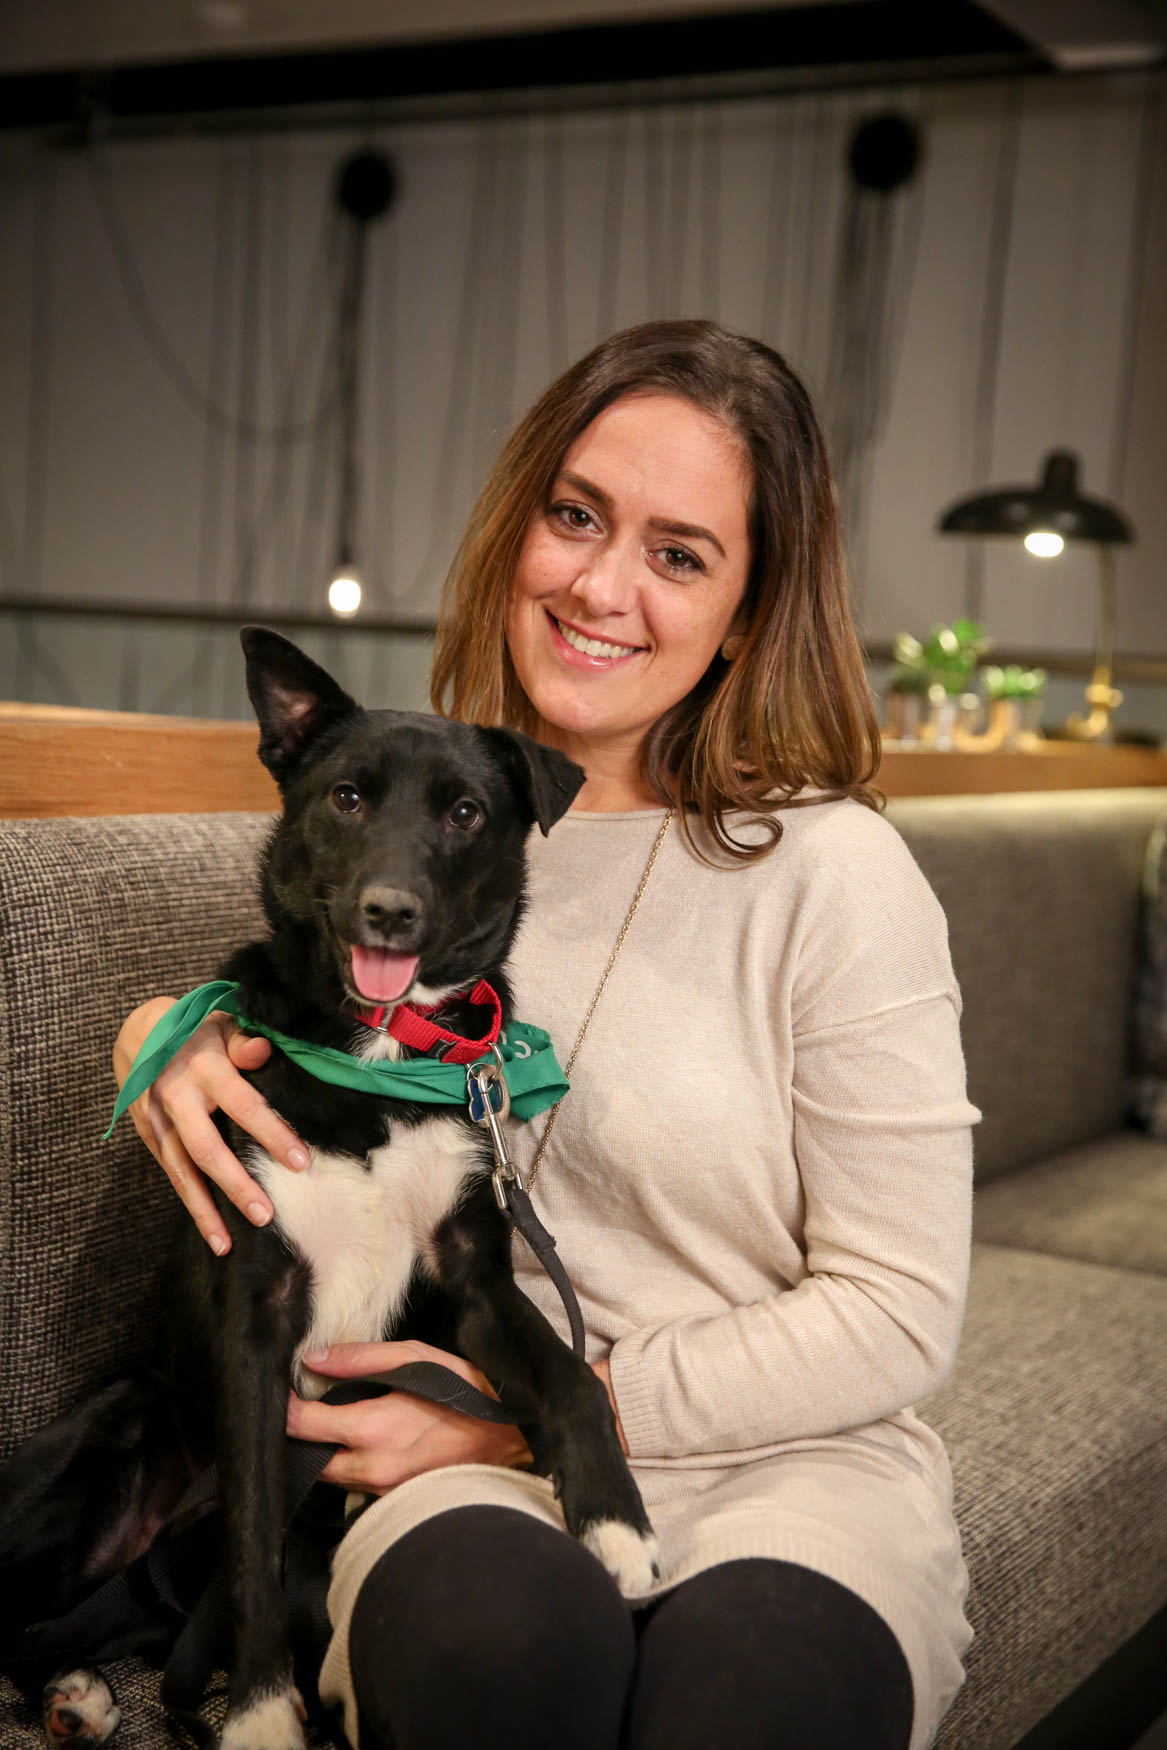 Meet Puddin' and Jacqui, a 1-year-old Lab mix and a 35-year-old human respectively. Photo location: Moxy Washington, D.C. Downtown (Image: Amanda Andrade-Rhoades/ DC Refined)